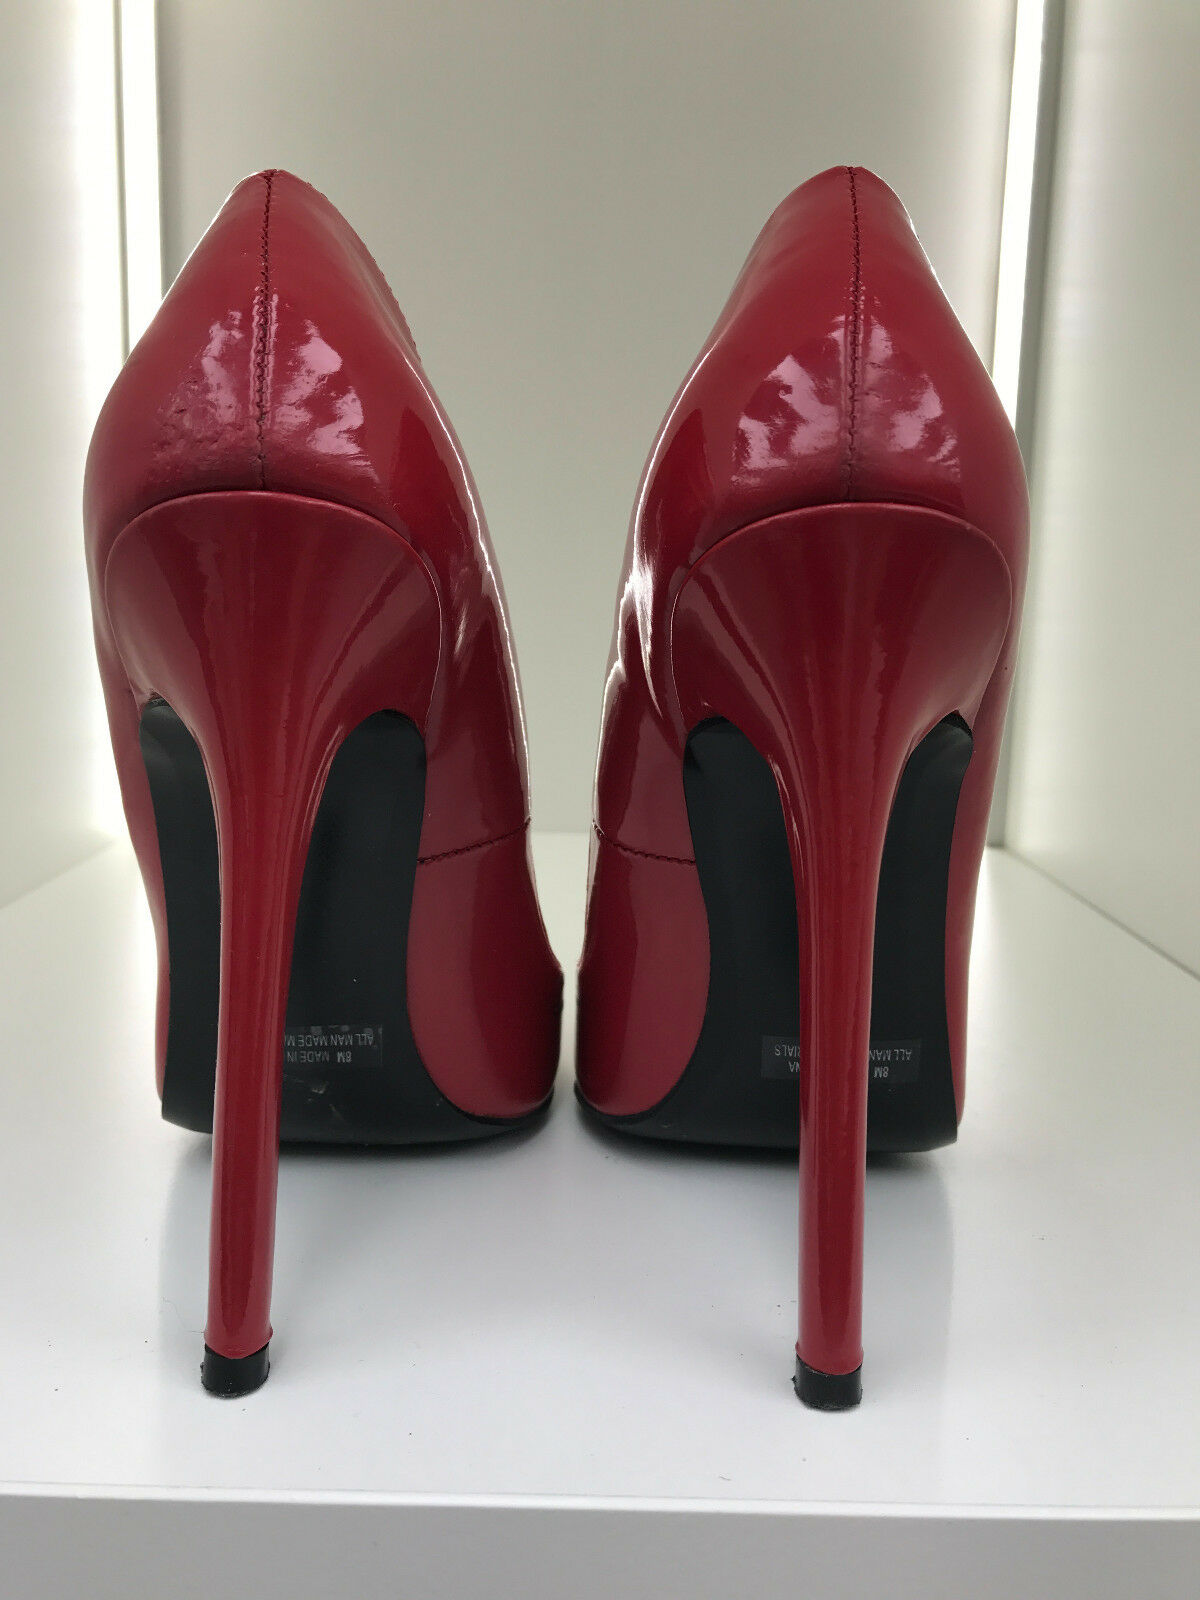 14cm Sexy sky high heels patent rot rot rot rot pumps Hottie fetish high heels 38 US8 a8dbb7